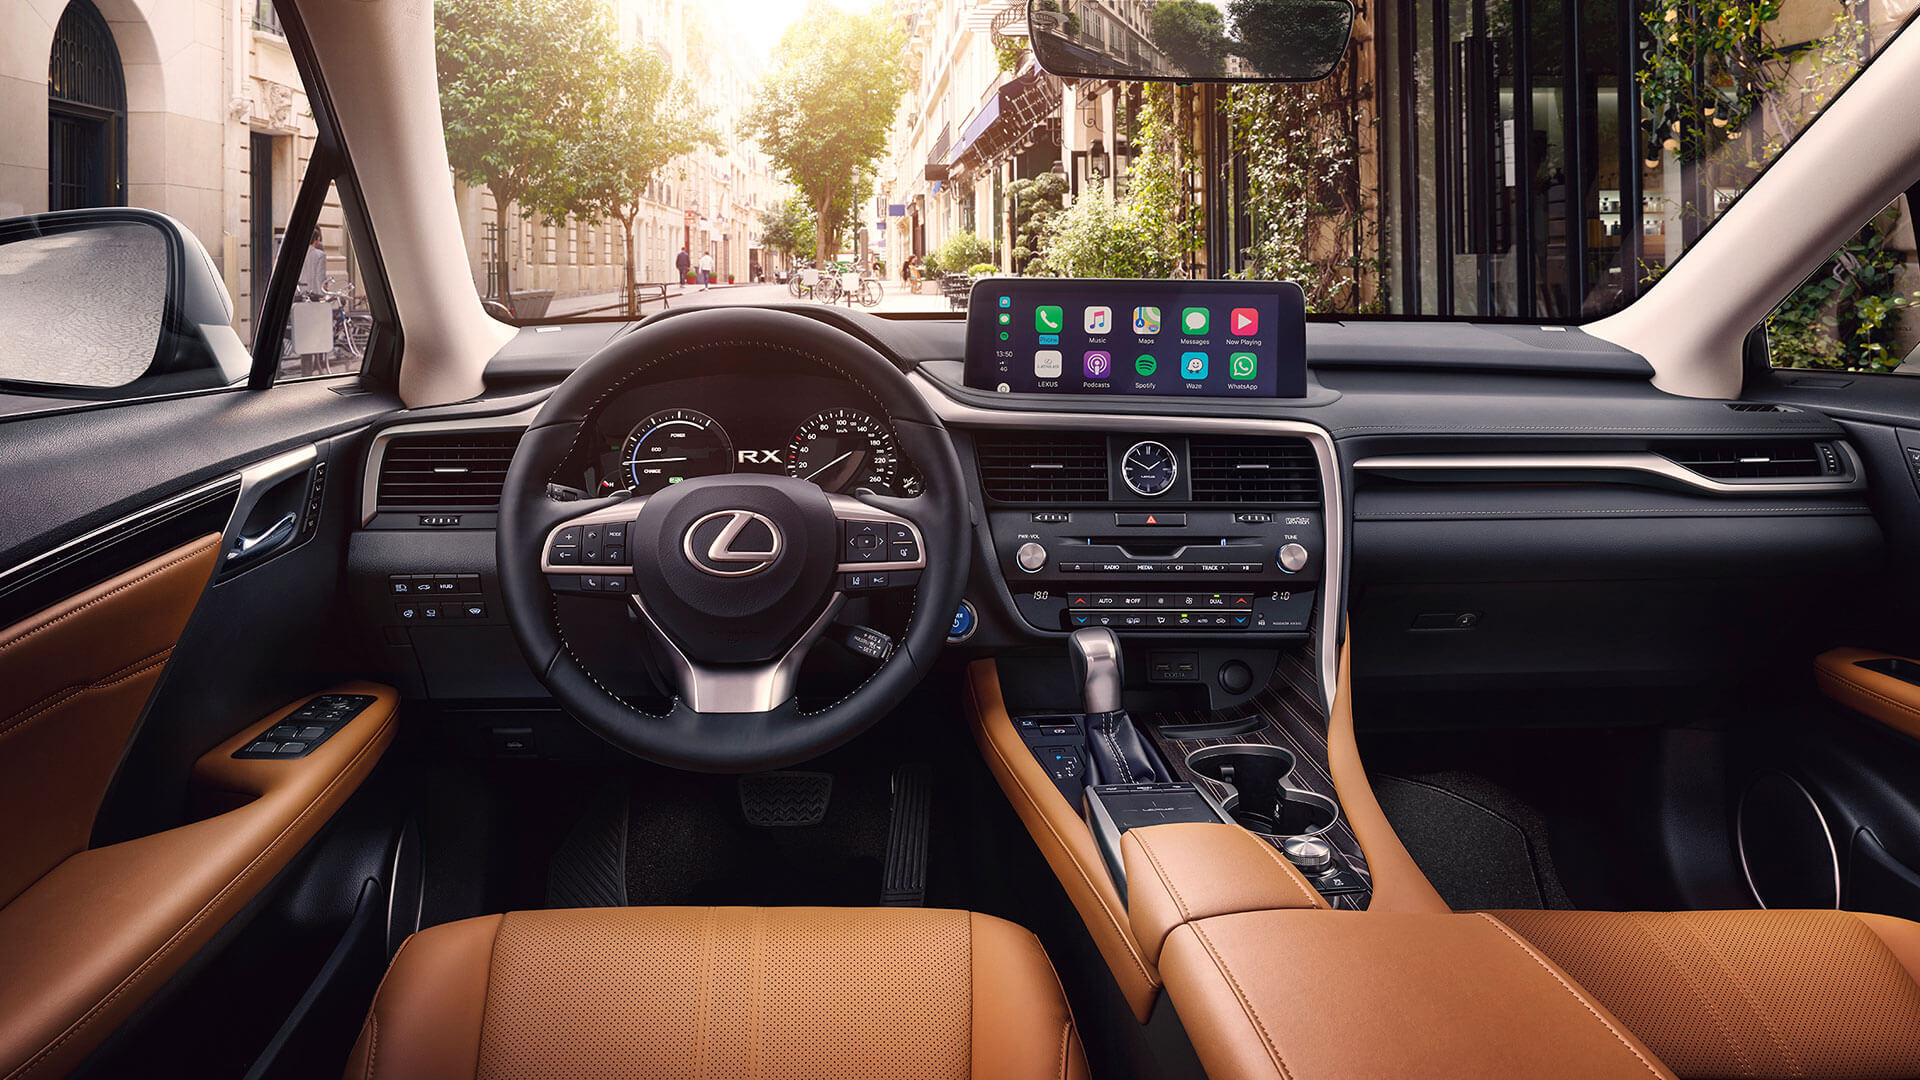 2019 lexus rx hotspot lexus connected services